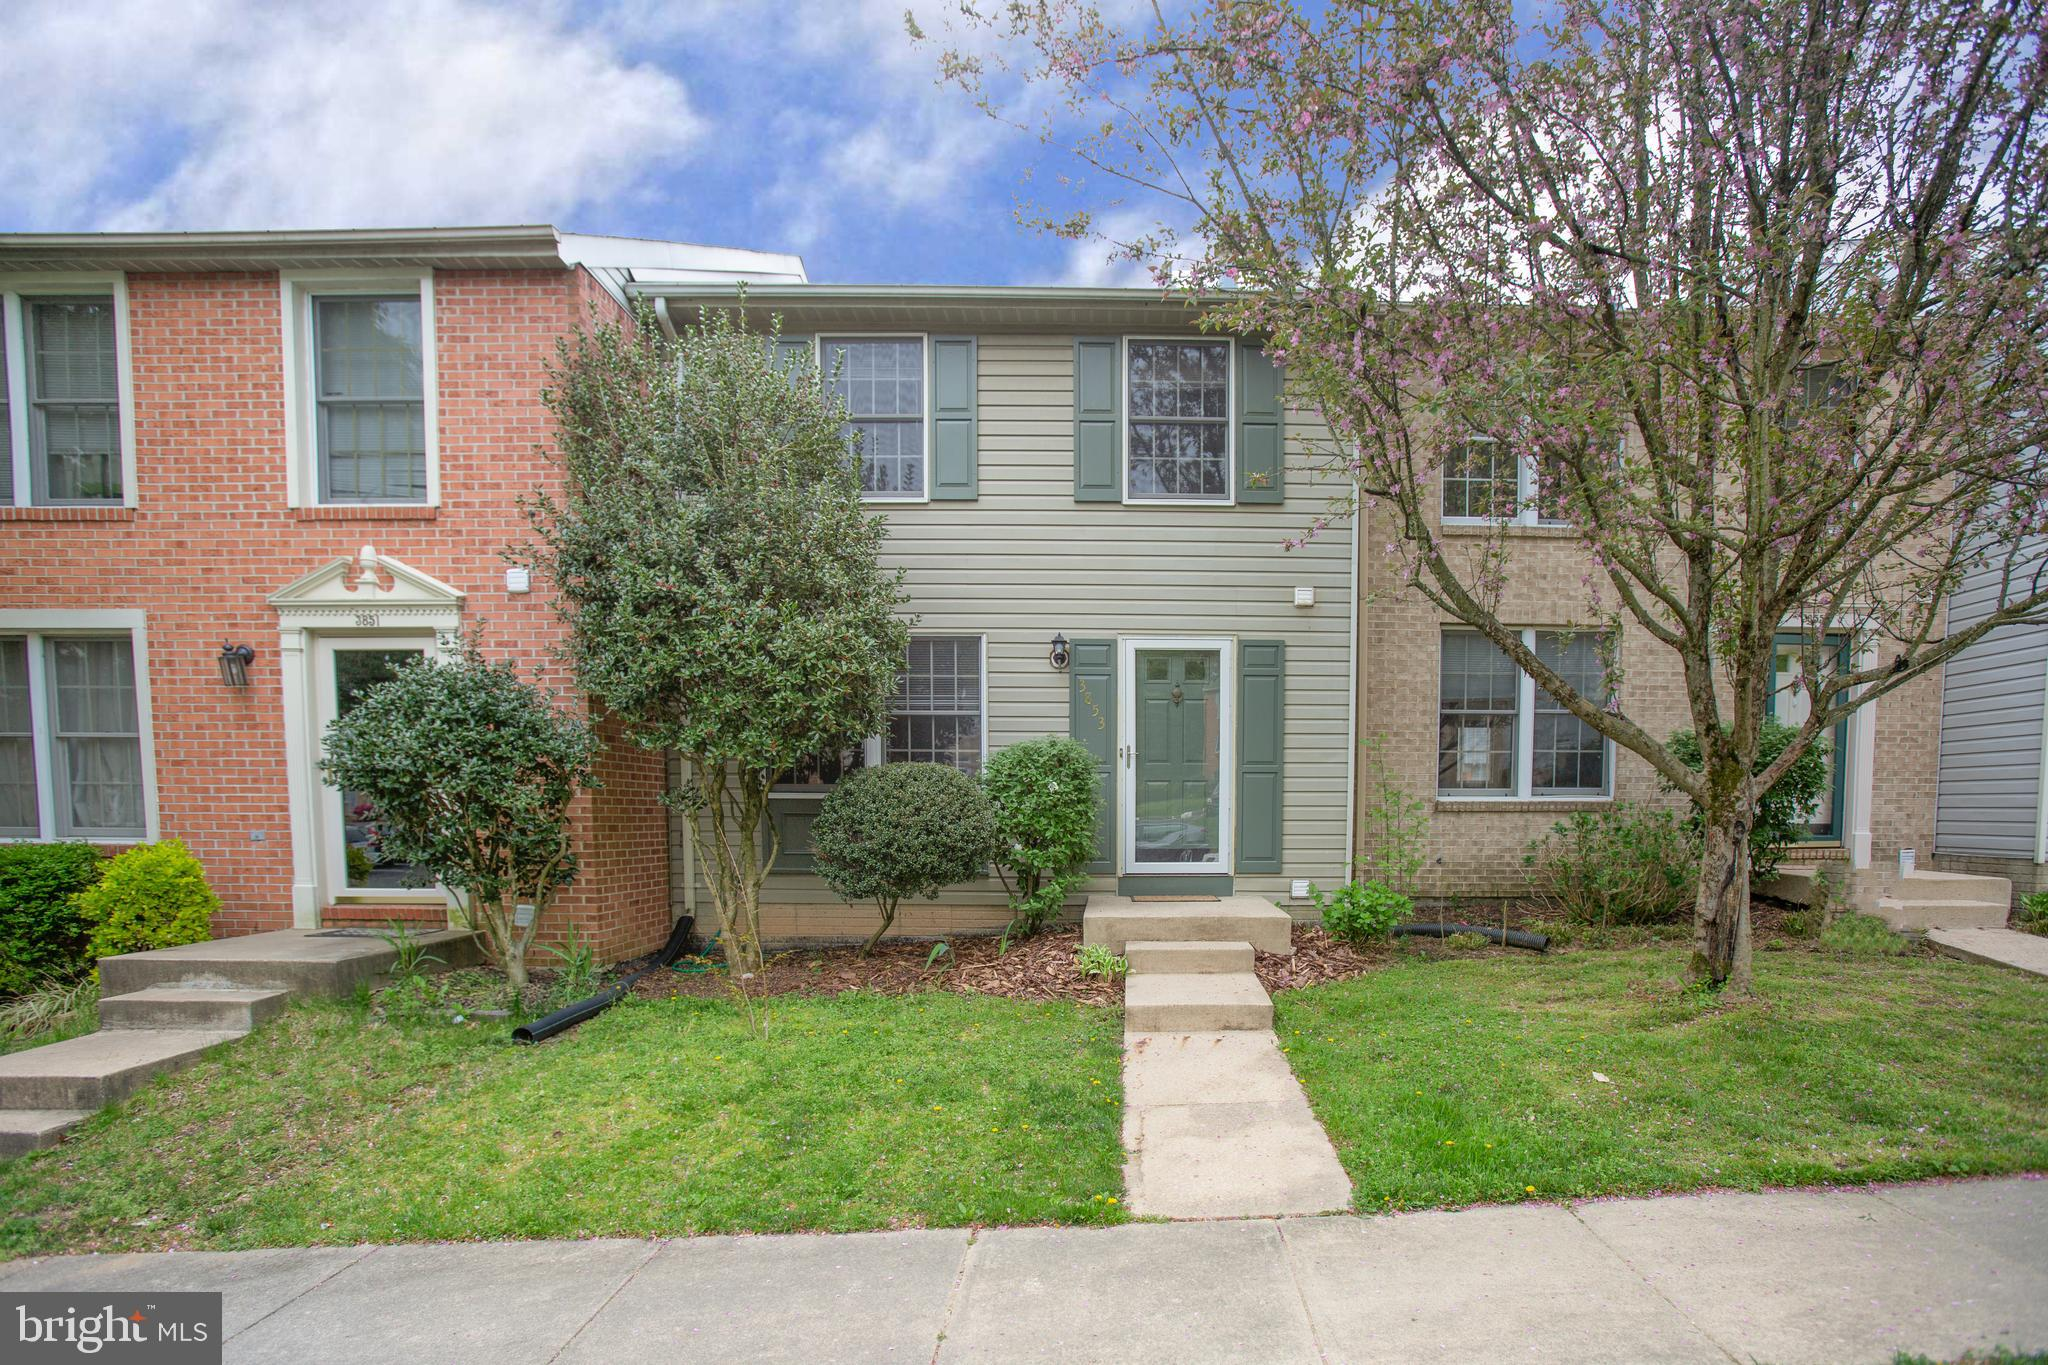 Wonderful 3 level townhome with large, fenced back yard on cul-de-sac. New Roof, updated appliances, granite kitchen, water heater and HVAC installed within the last 3 years. Notable features include walkout basement, walk-in closet, upgraded carpet, large master suite, and more.